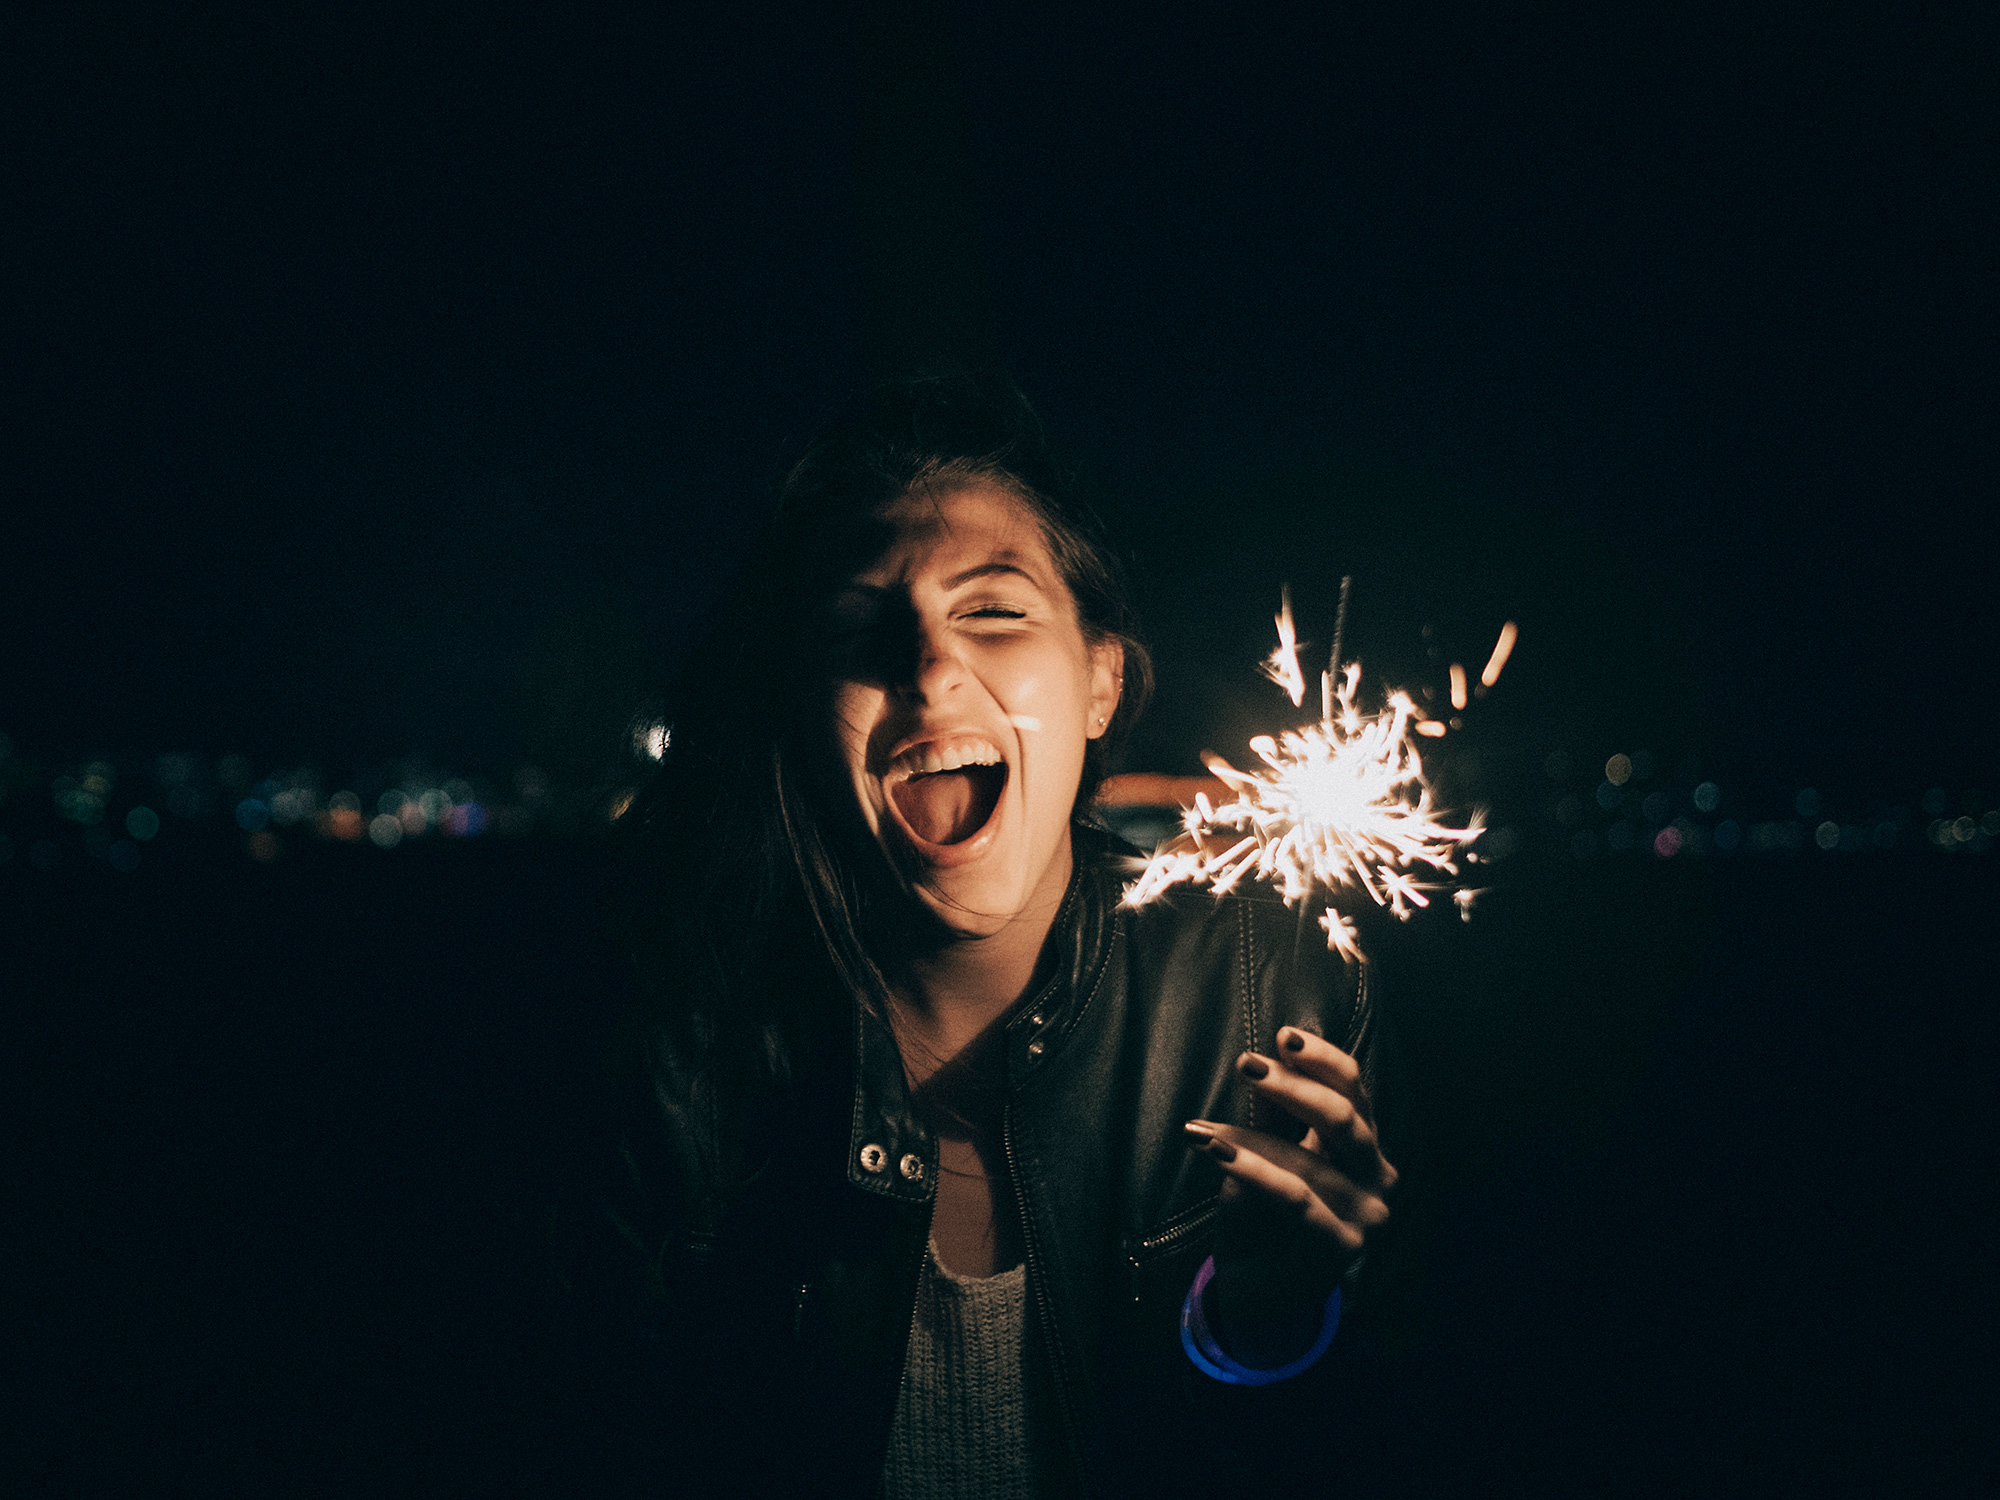 A girl holds a lit sparkler during a New Year